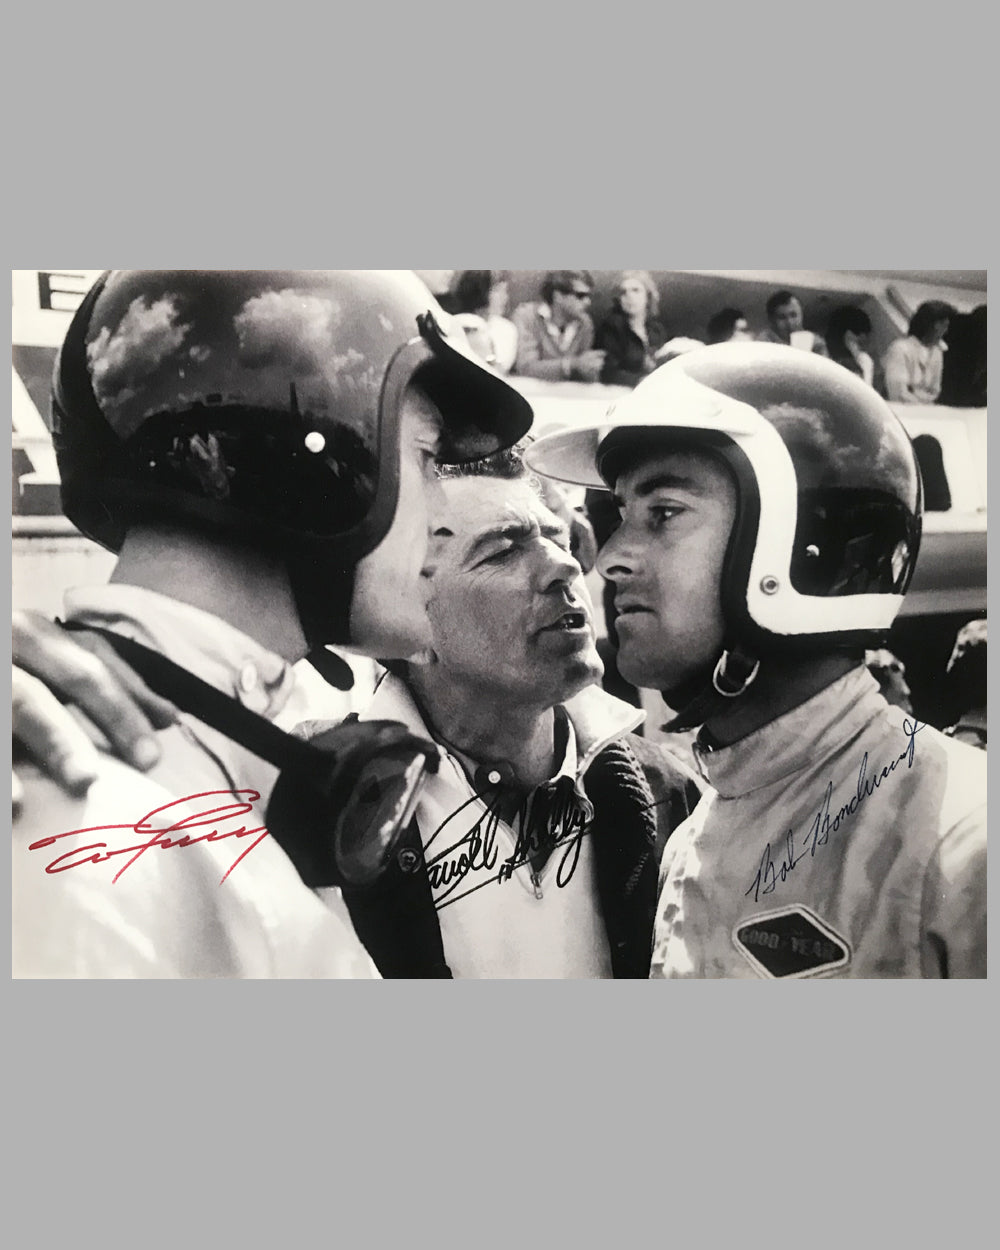 Dan Gurney, Carroll Shelby and Bob Bondurant autographed b&w photograph on rag paper